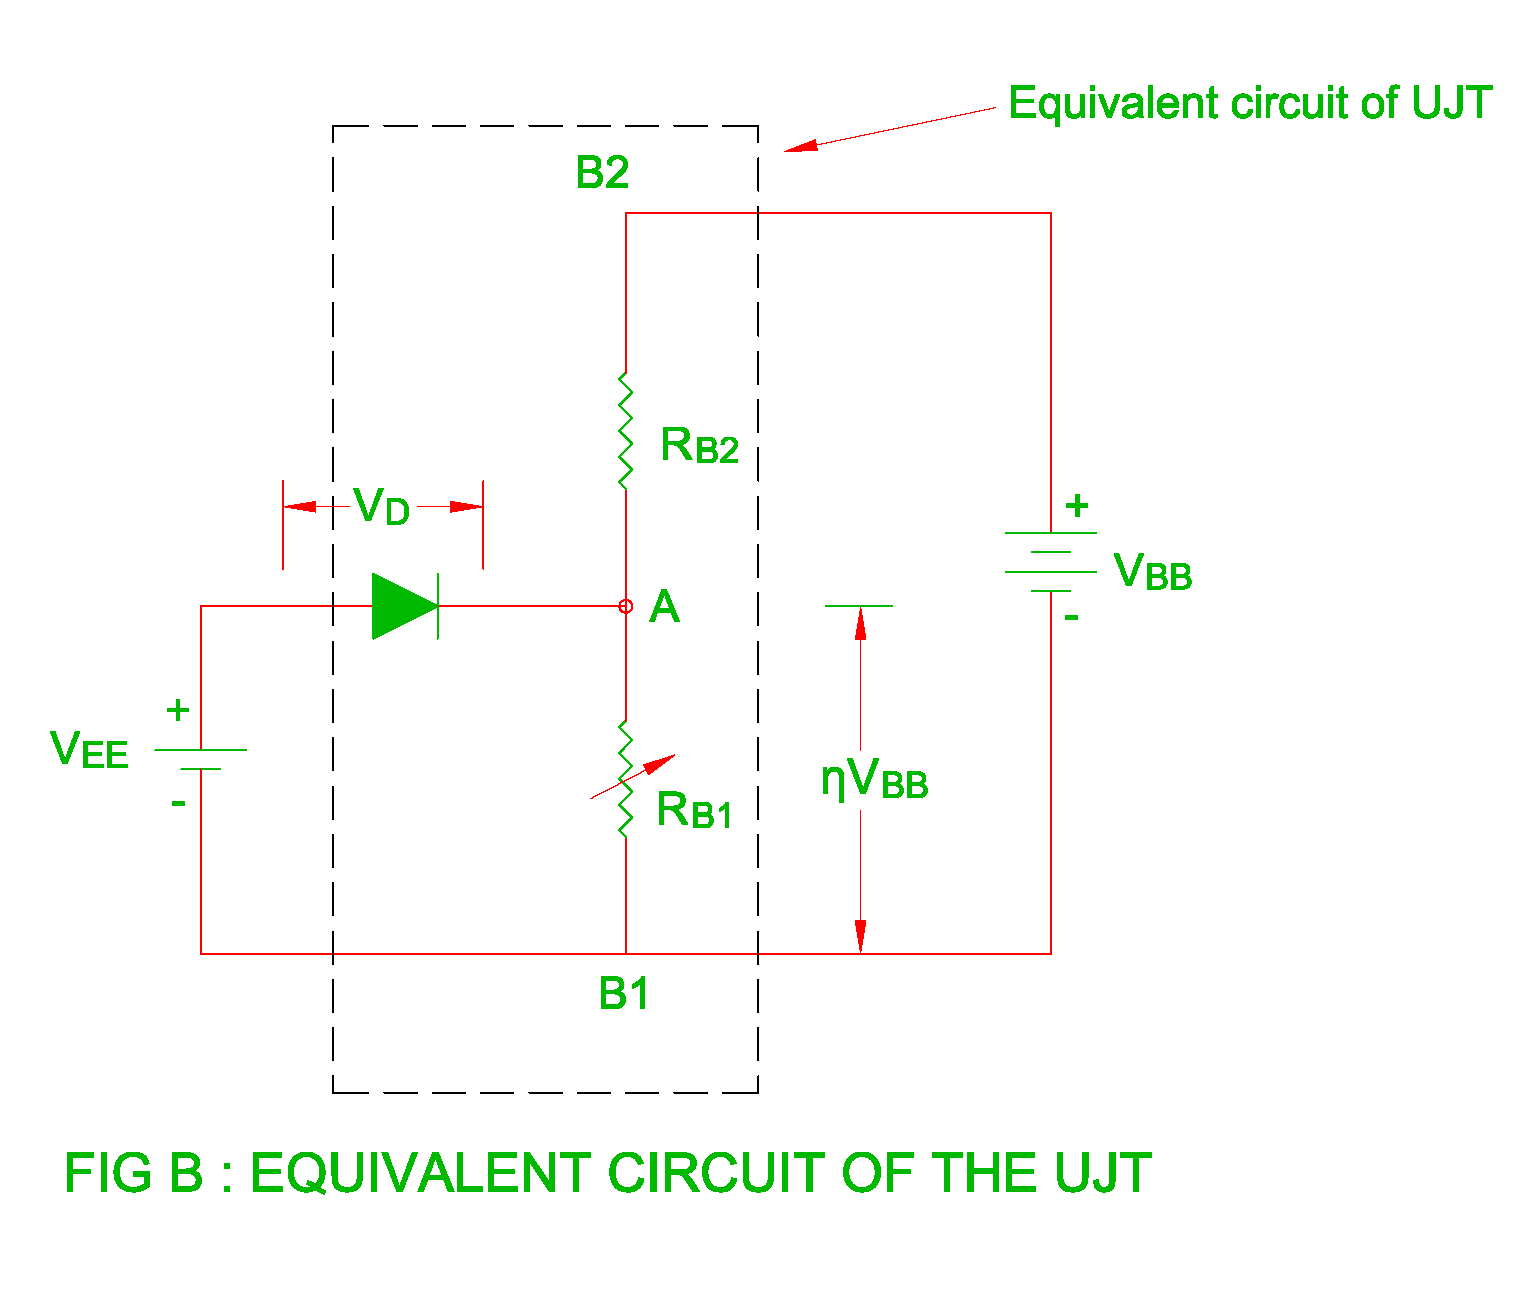 Structure Equivalent Circuit Working And Characteristic Download Free Voltage Divider Diagram As The Emitter E Is Located Closer To Base 2 Terminal Resistance R B2 Greater Than B1